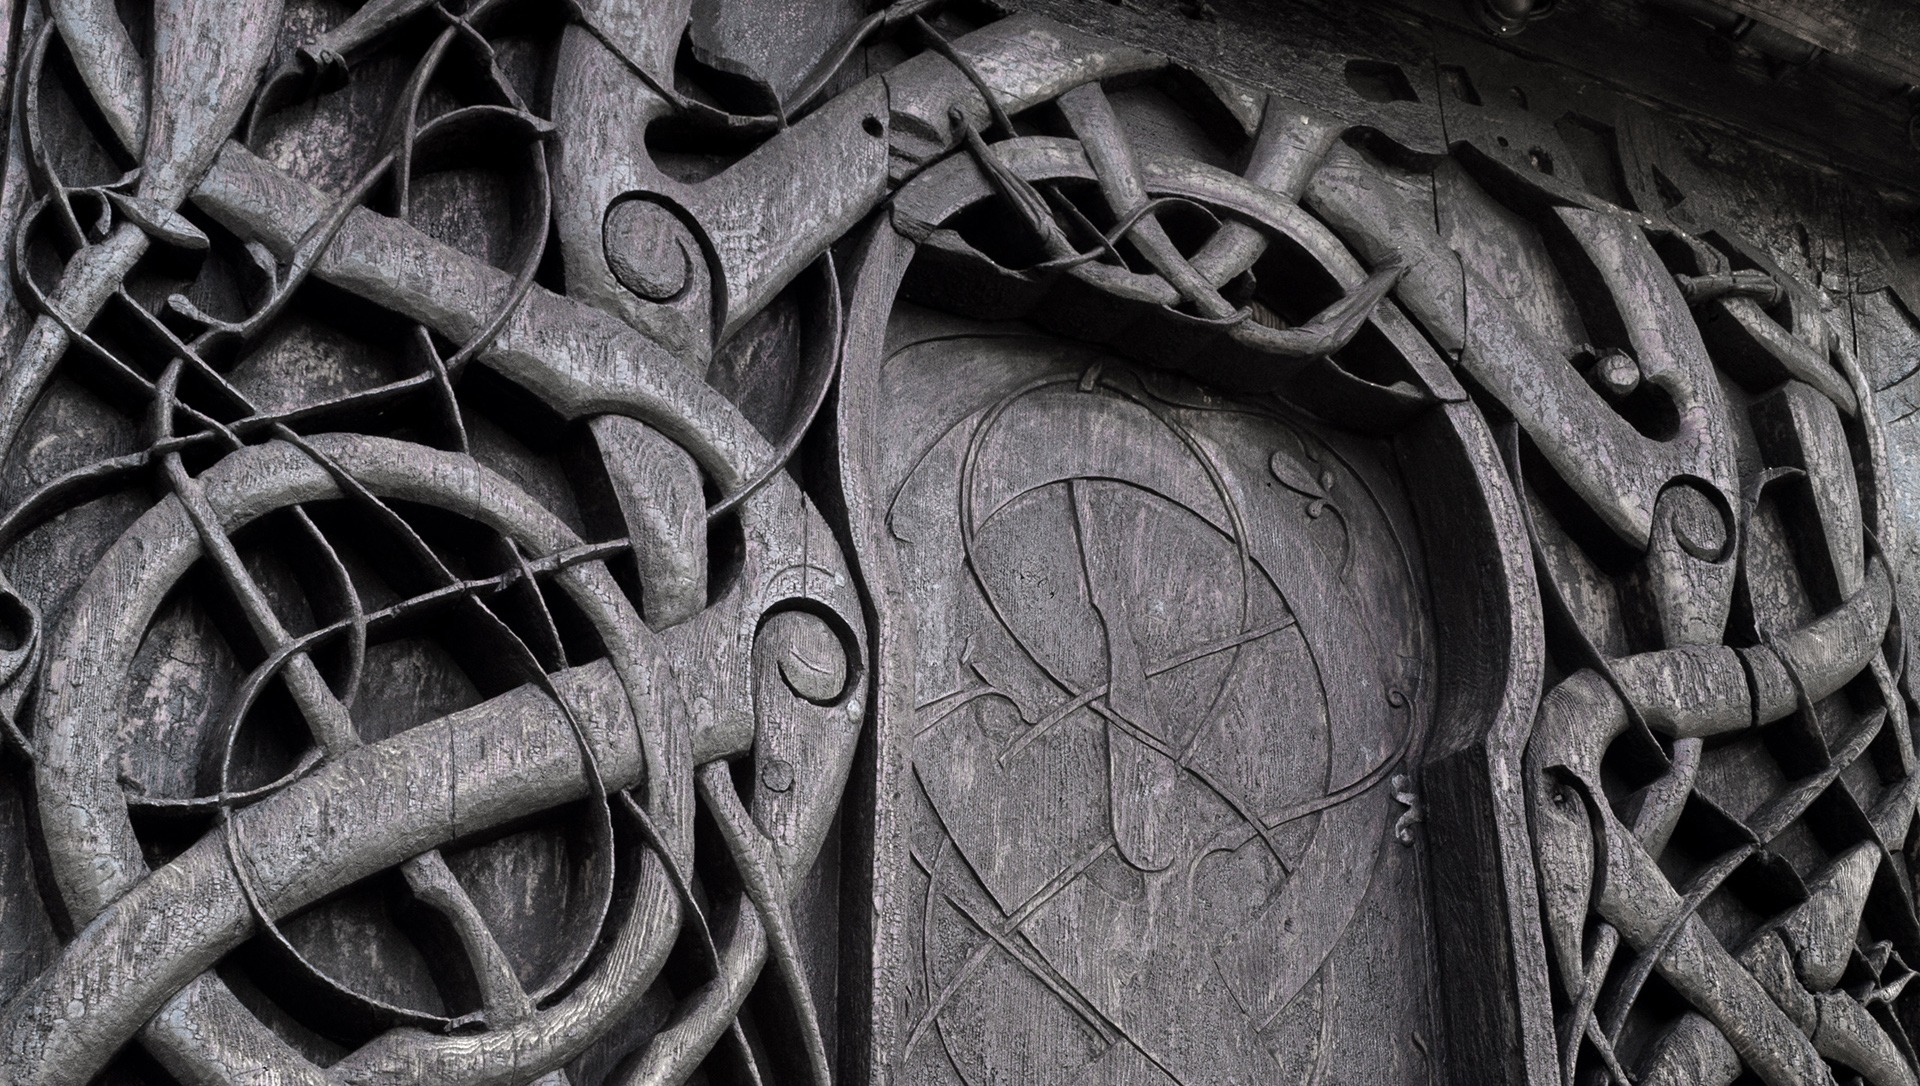 Picture of the doorway of Urnes Stave Church. Photo by Ragnar Utne, the Dircetorate for Cultural Heritage